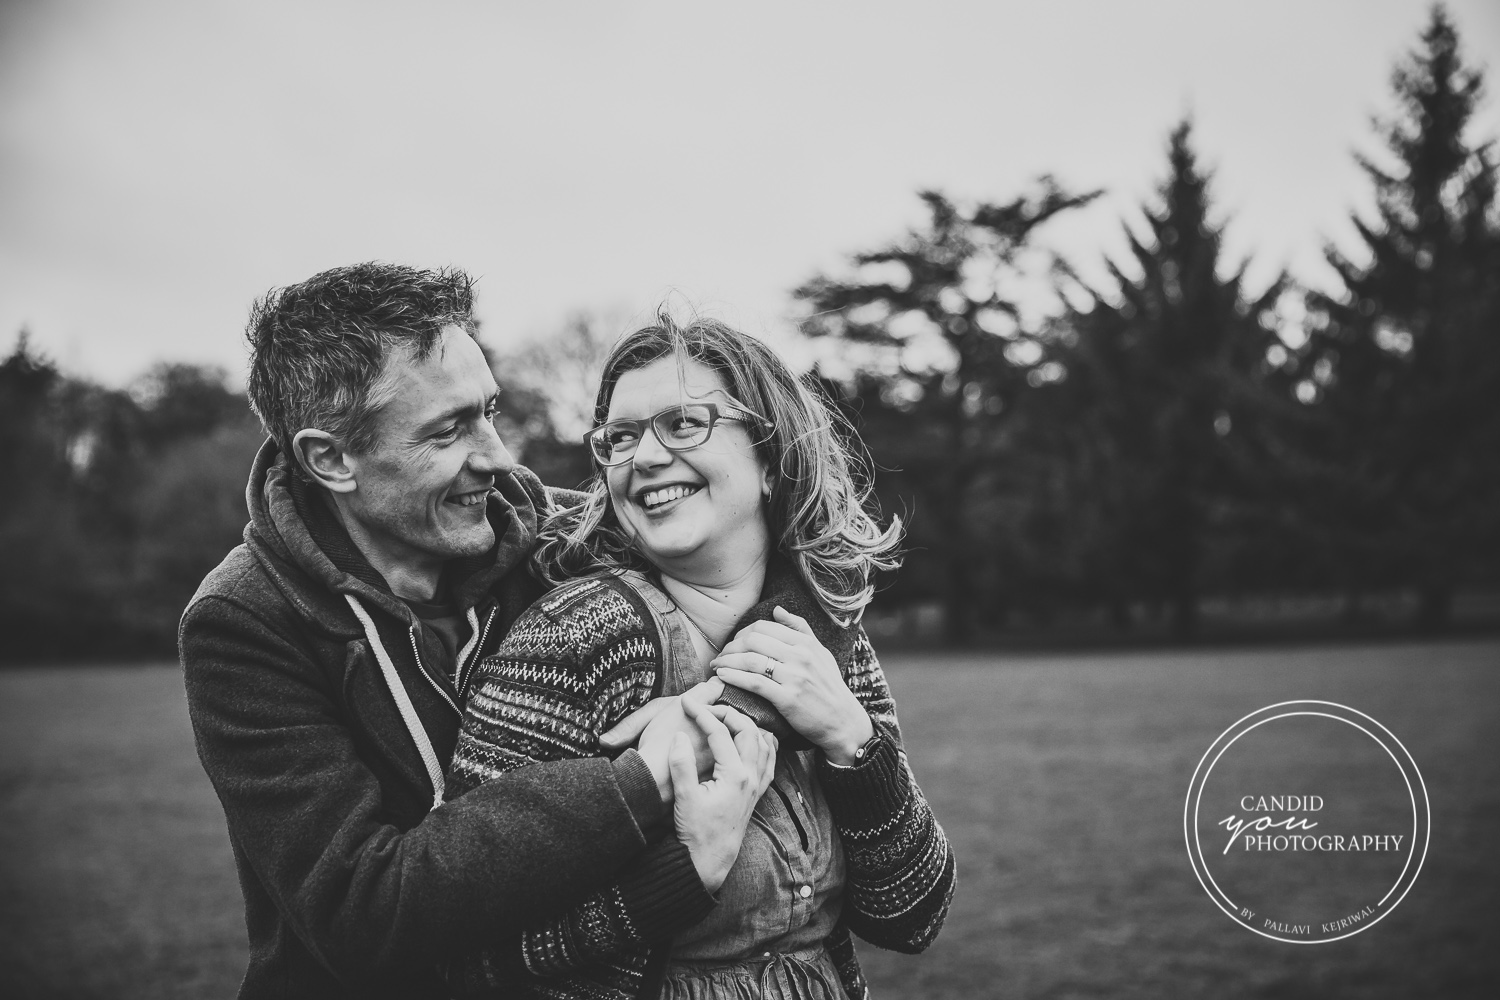 Harborne couple parents looks lovingly and romantically at each other